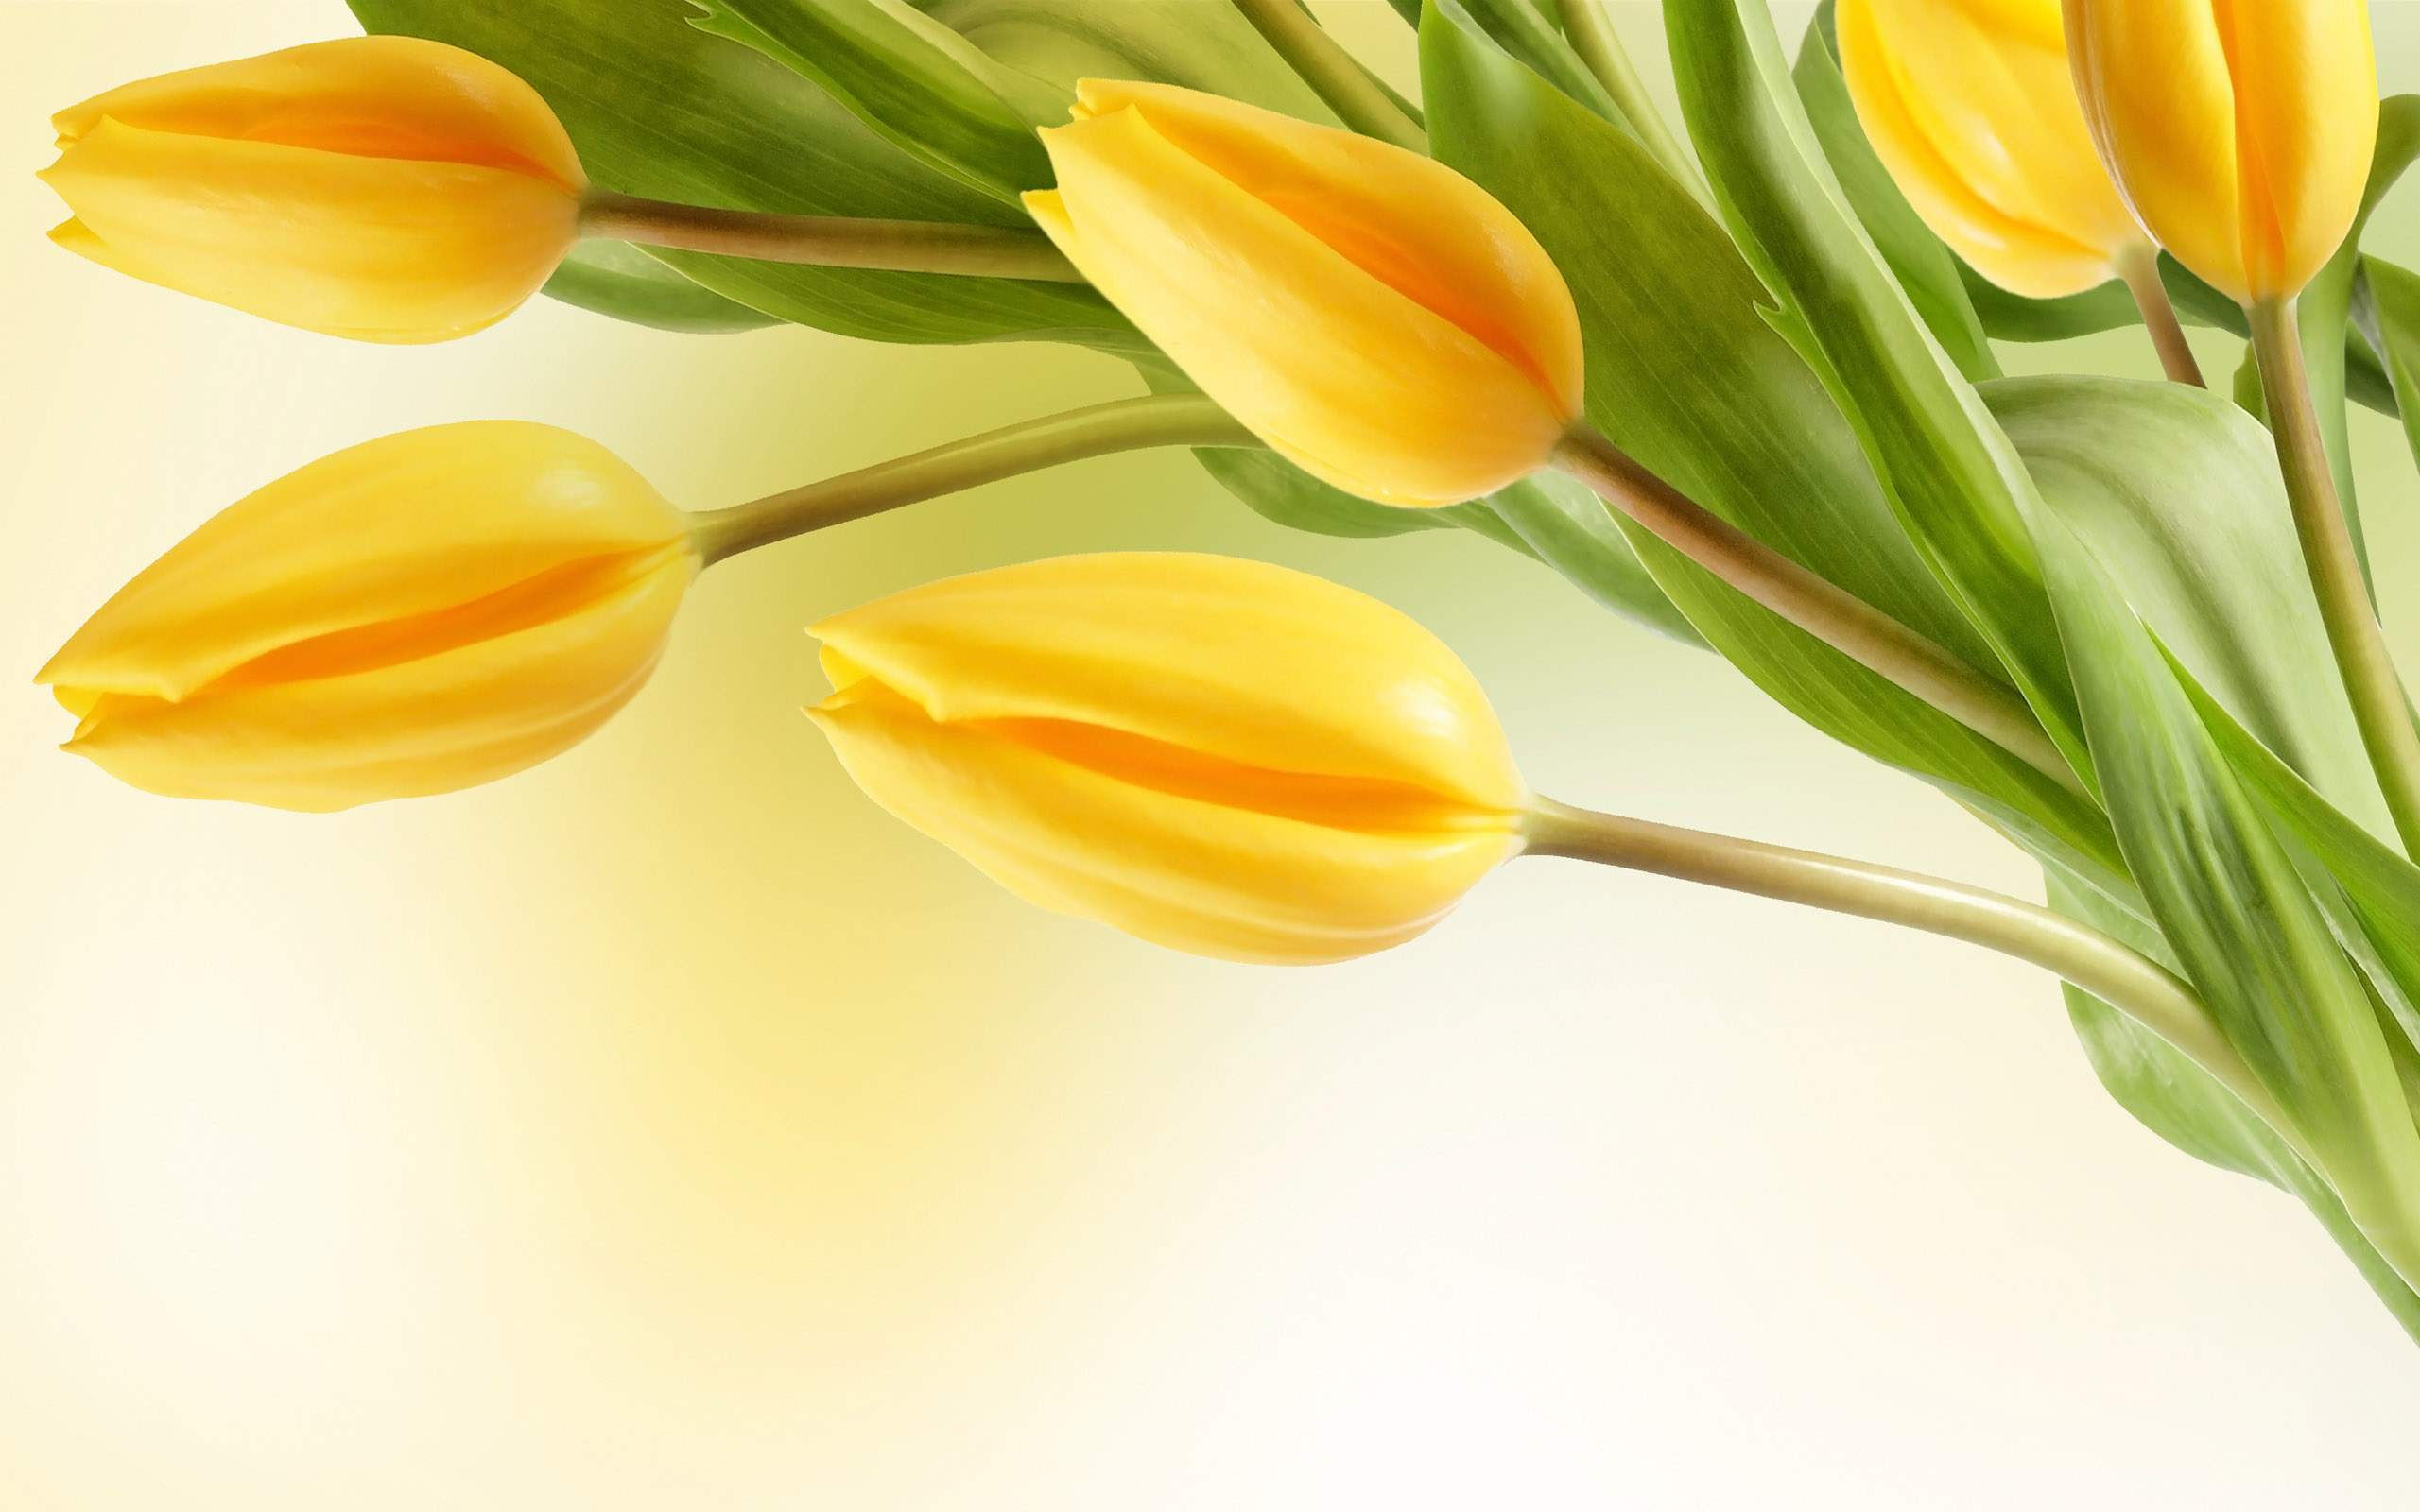 Yellow flowers images 8 cool wallpaper hdflowerwallpaper yellow flowers images free wallpaper mightylinksfo Choice Image